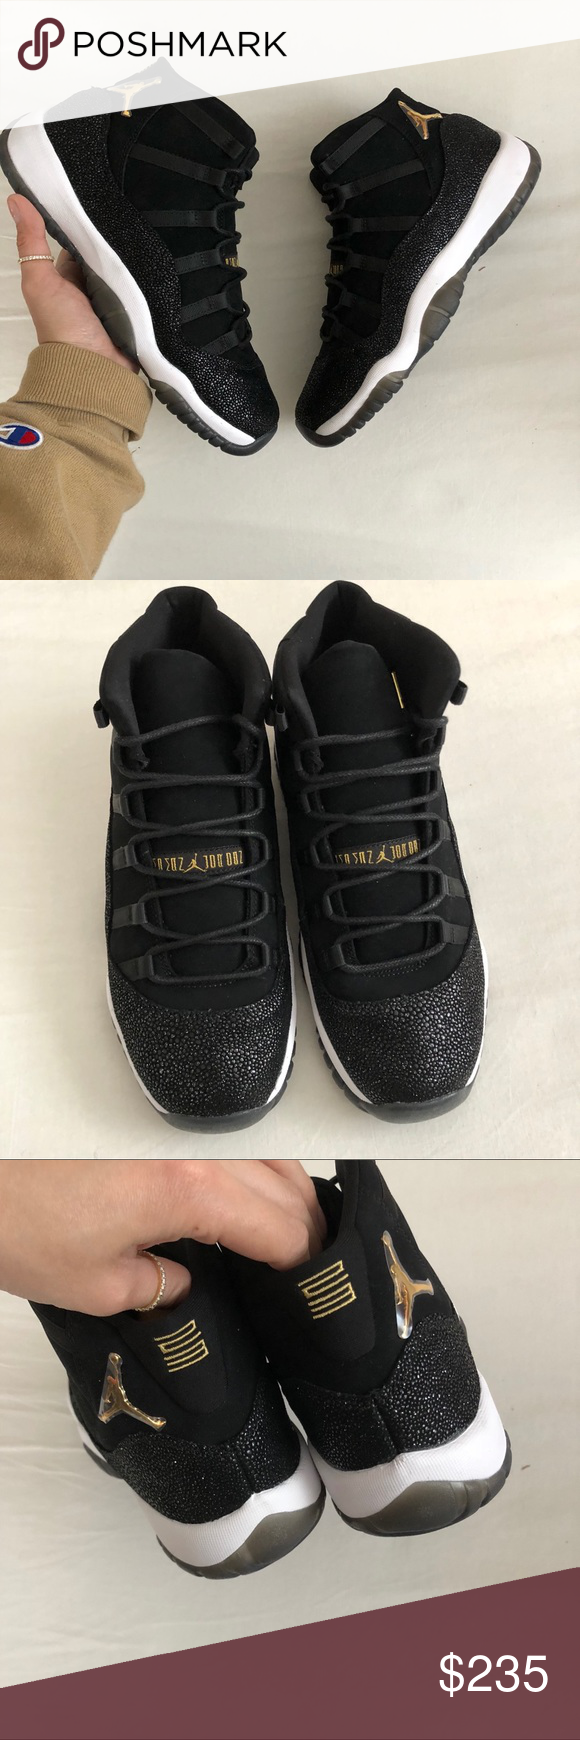 93f8f40dd31 Air Jordan 11 Retro Premium GS Heiress Brand new with the box but no lid  SOLD OUT Youth size 7.5y which is women's size 9 Air Jordan Shoes Athletic  Shoes